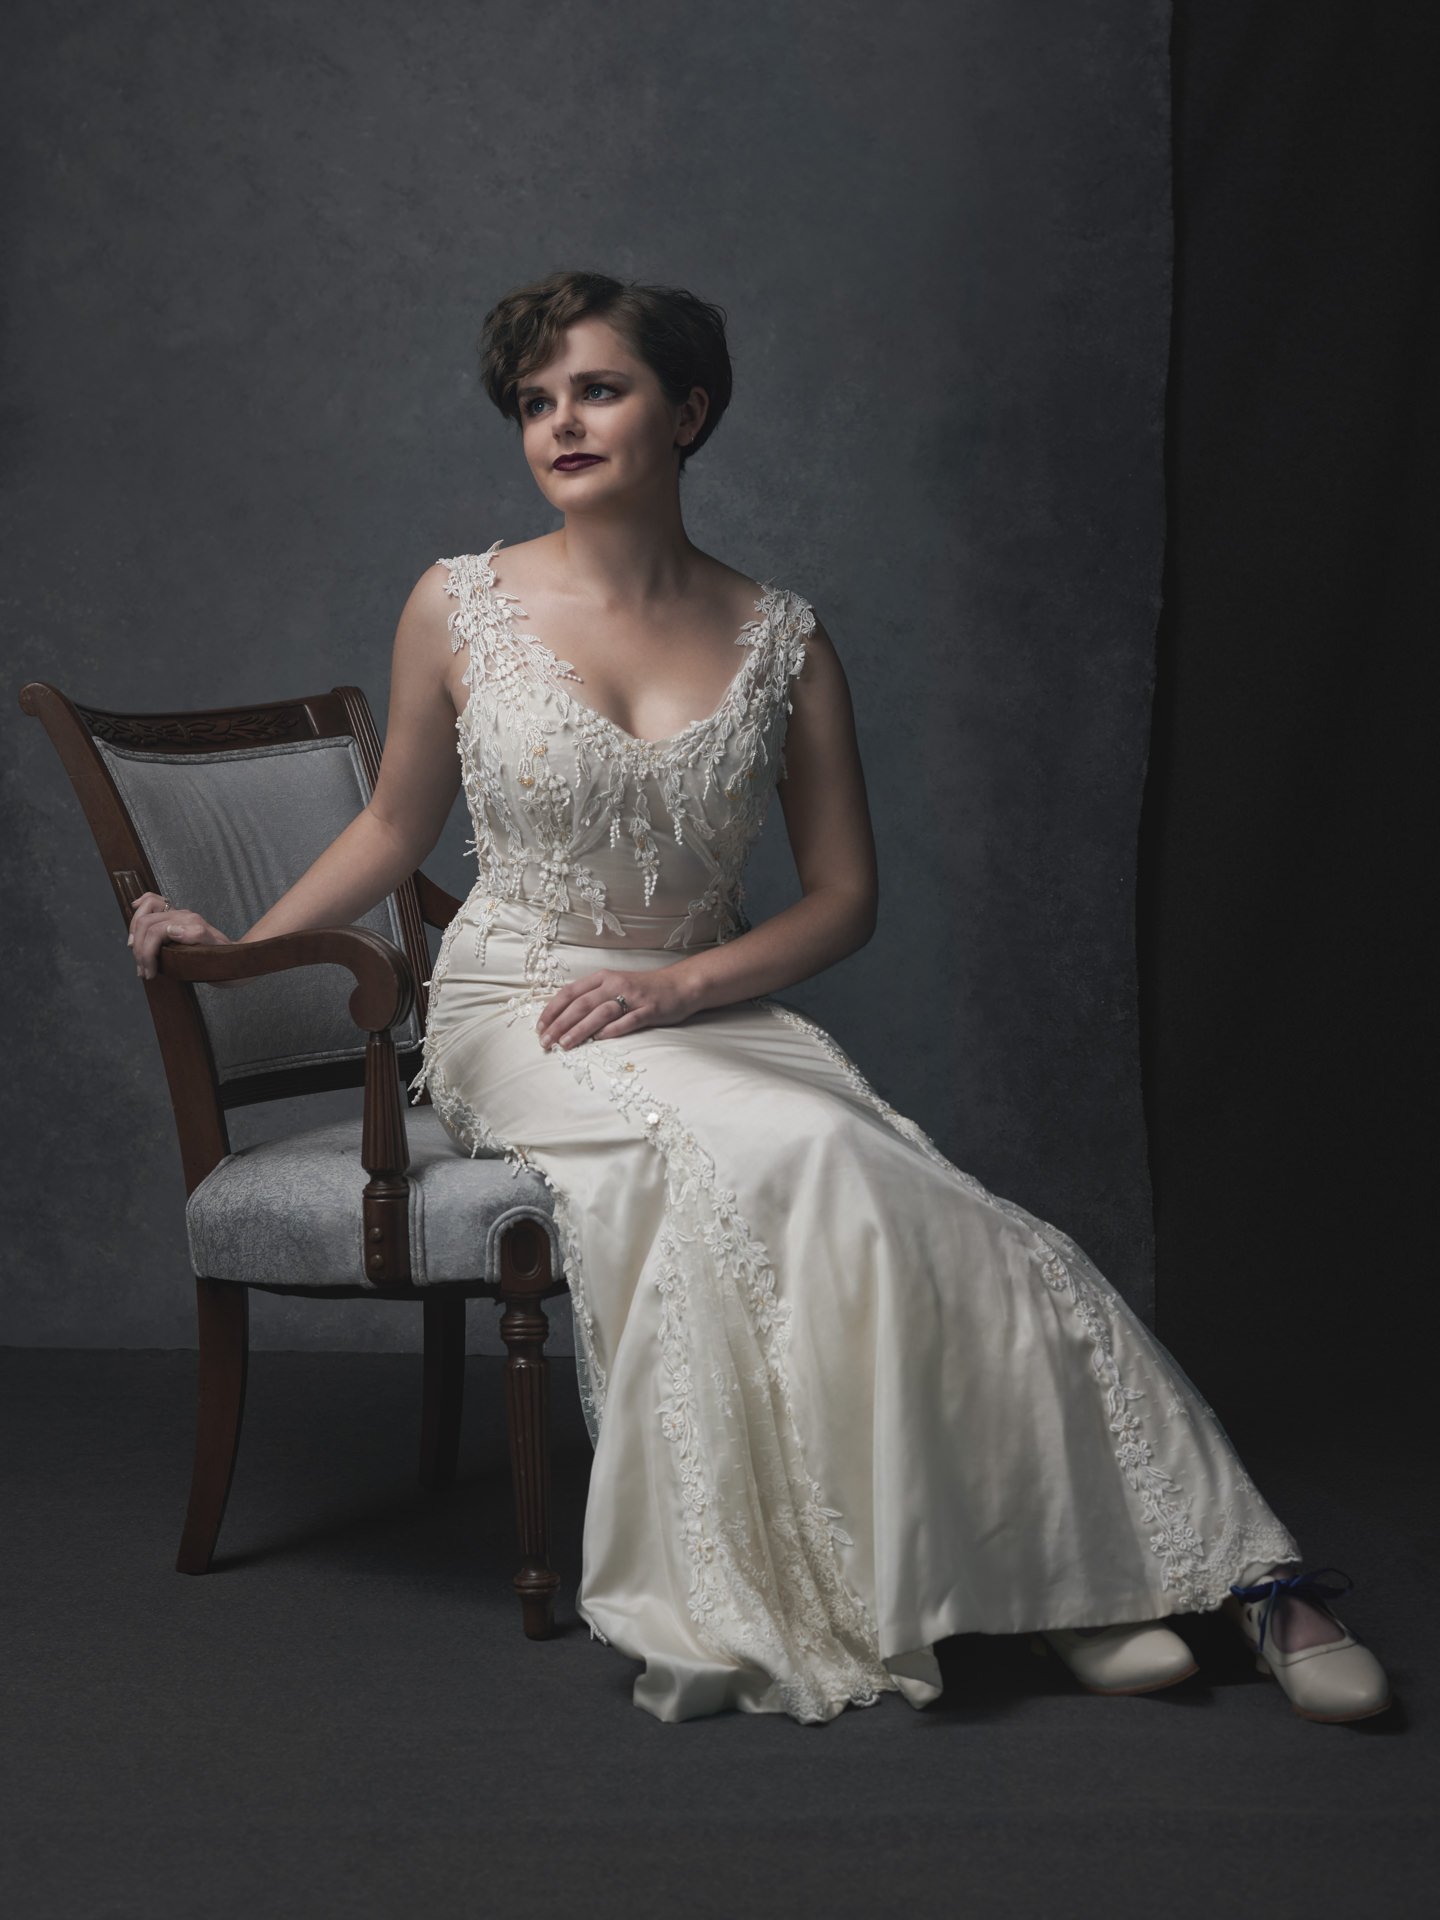 Bridal Portraits by Louisville Portrait Photographer Ben Marcum